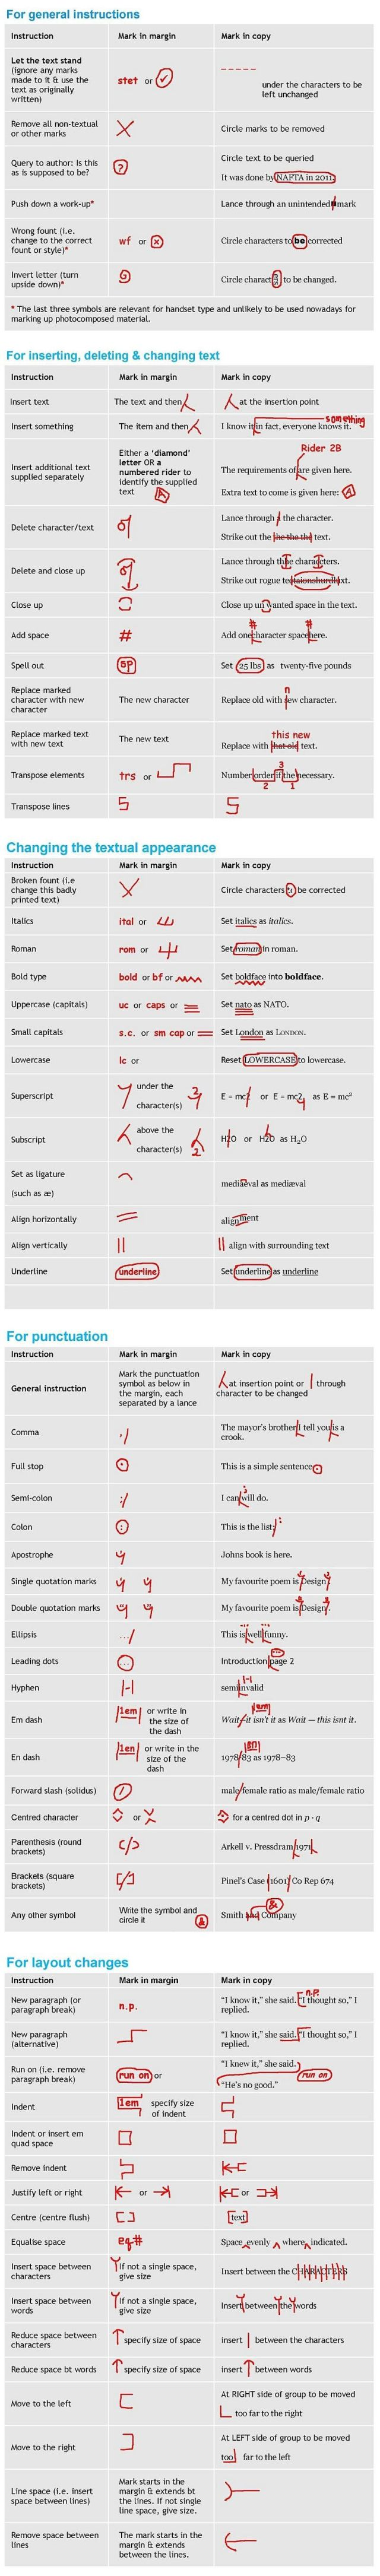 Proofreading marks and symbols